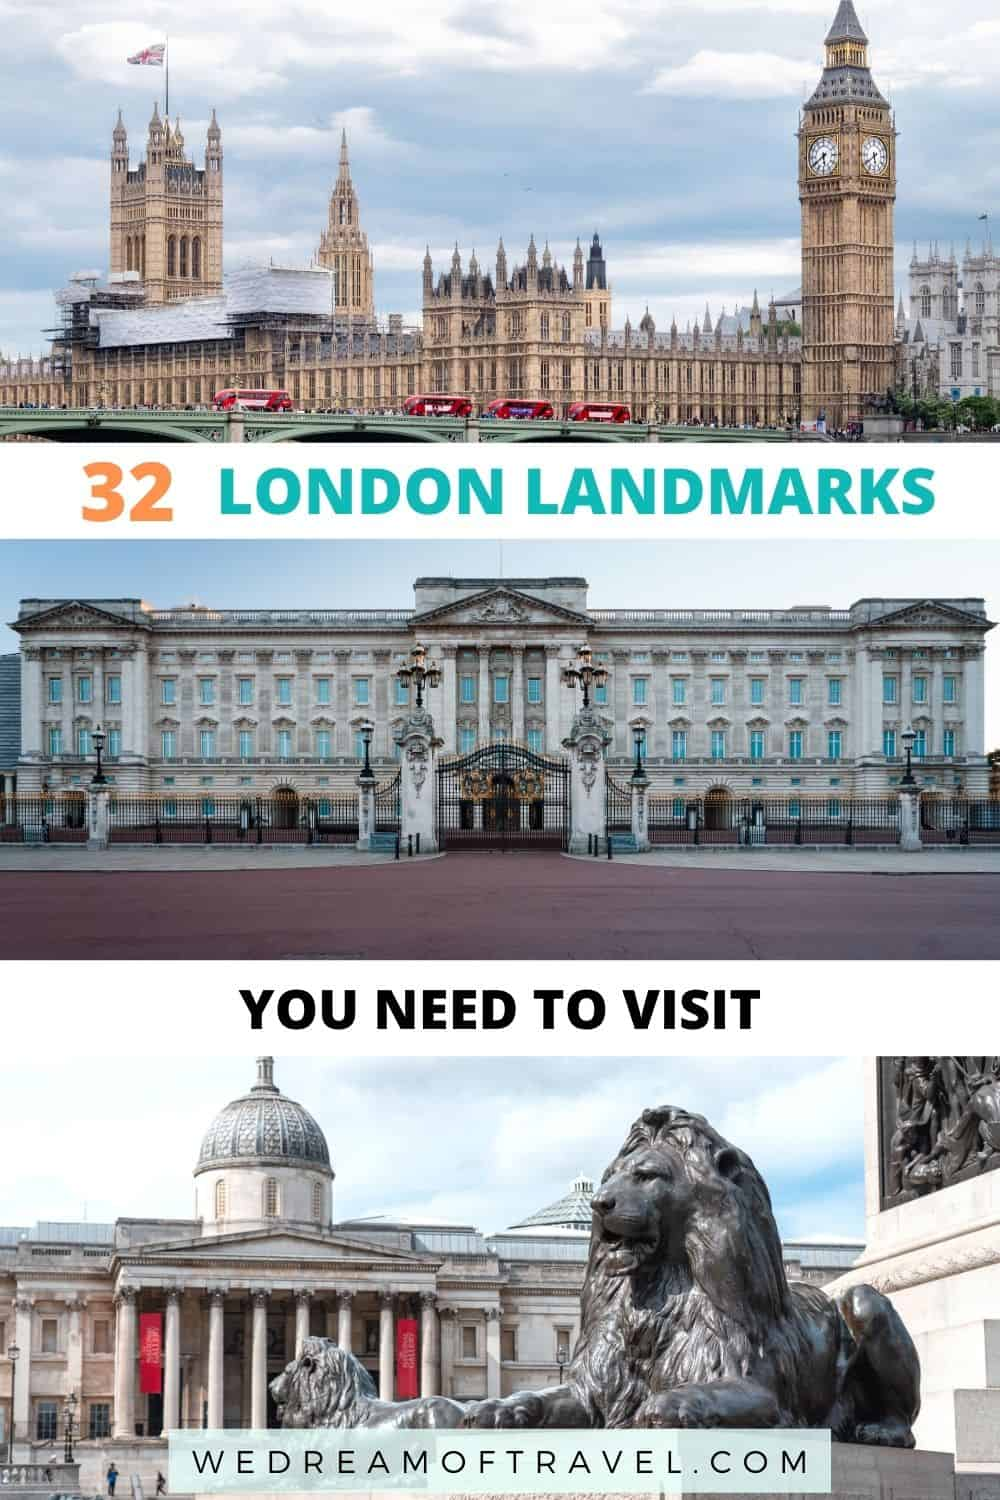 No visit to the capital city is complete without visiting some of the most famous landmarks in London. Discover 32 iconic sites in London you need to see! London Landmarks | Landmarks in London | Landmarks of London |Things to do in London | London Travel | London England